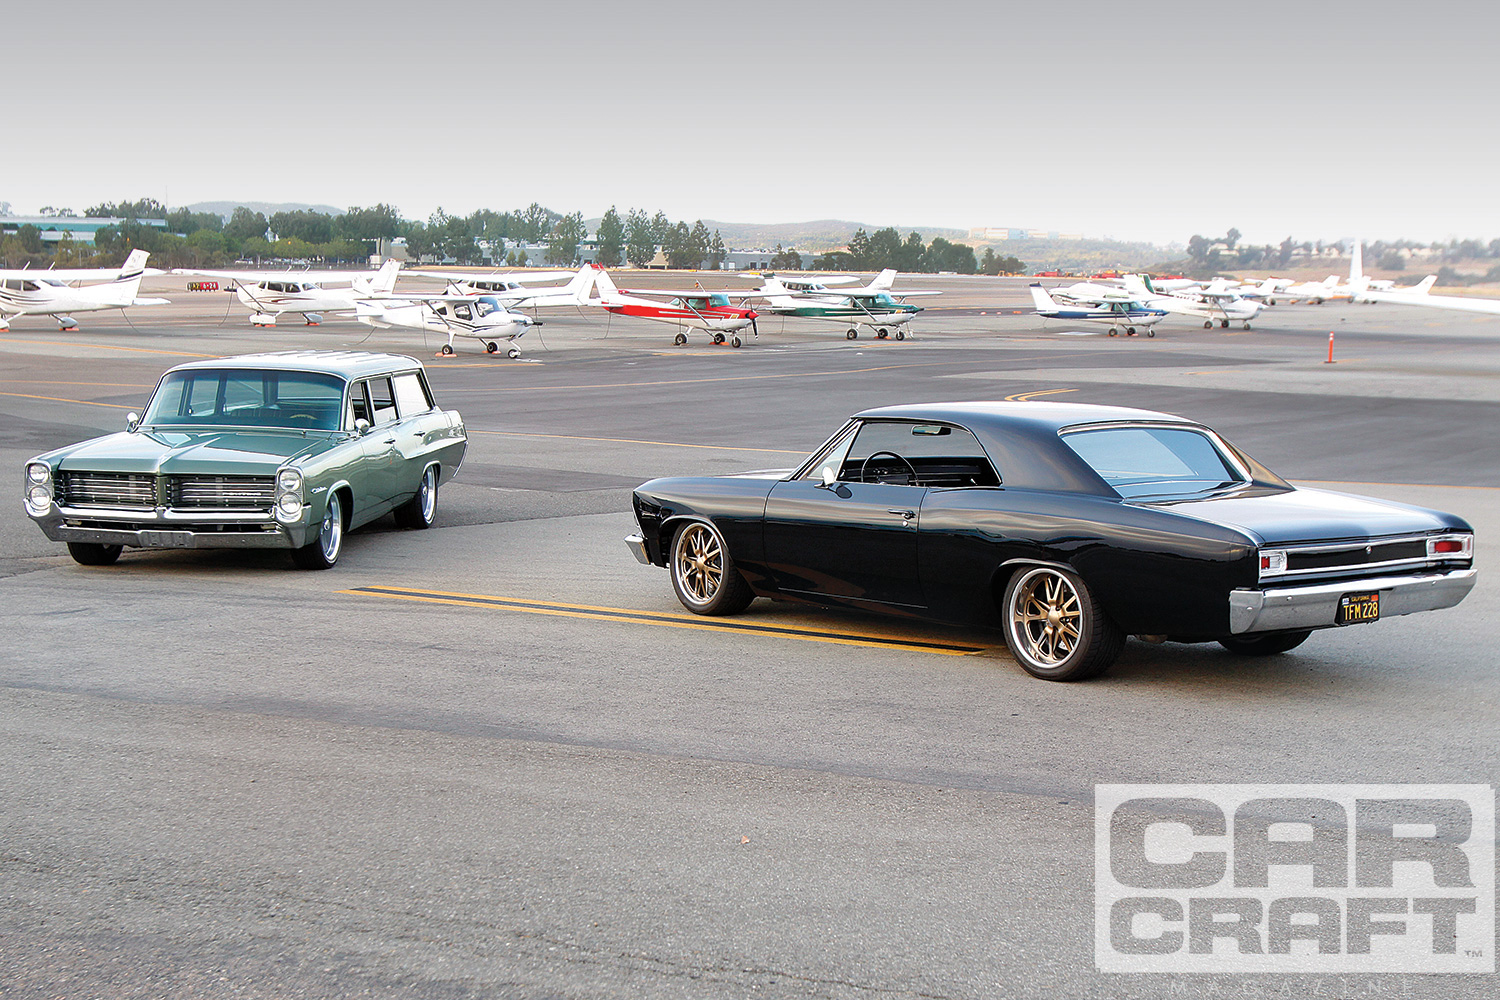 1964 Pontiac Wagon and 1966 Chevy Chevelle - Friends - Car Craft